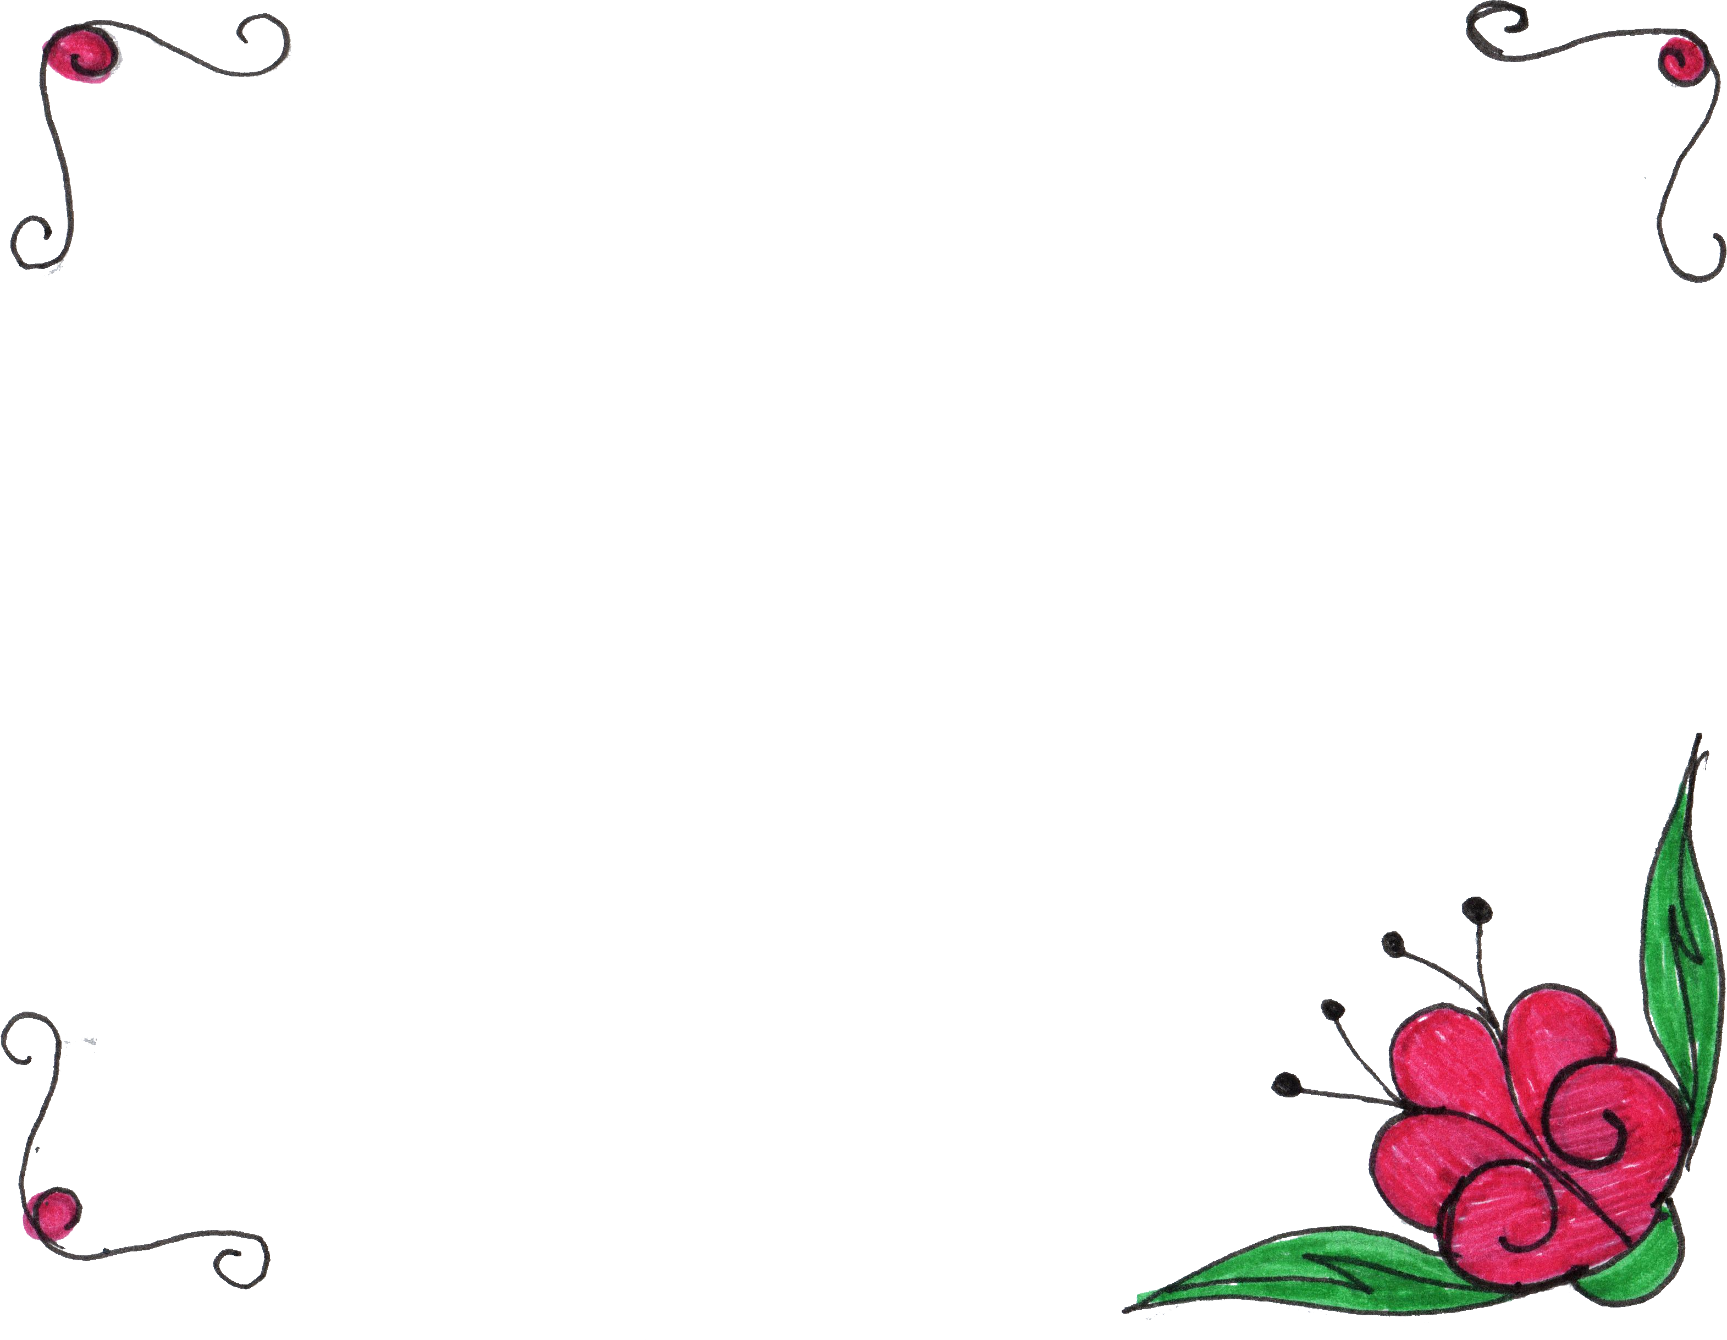 Flowers Vector Drawing Png: 8 Flower Frame Drawing (PNG Transparent)